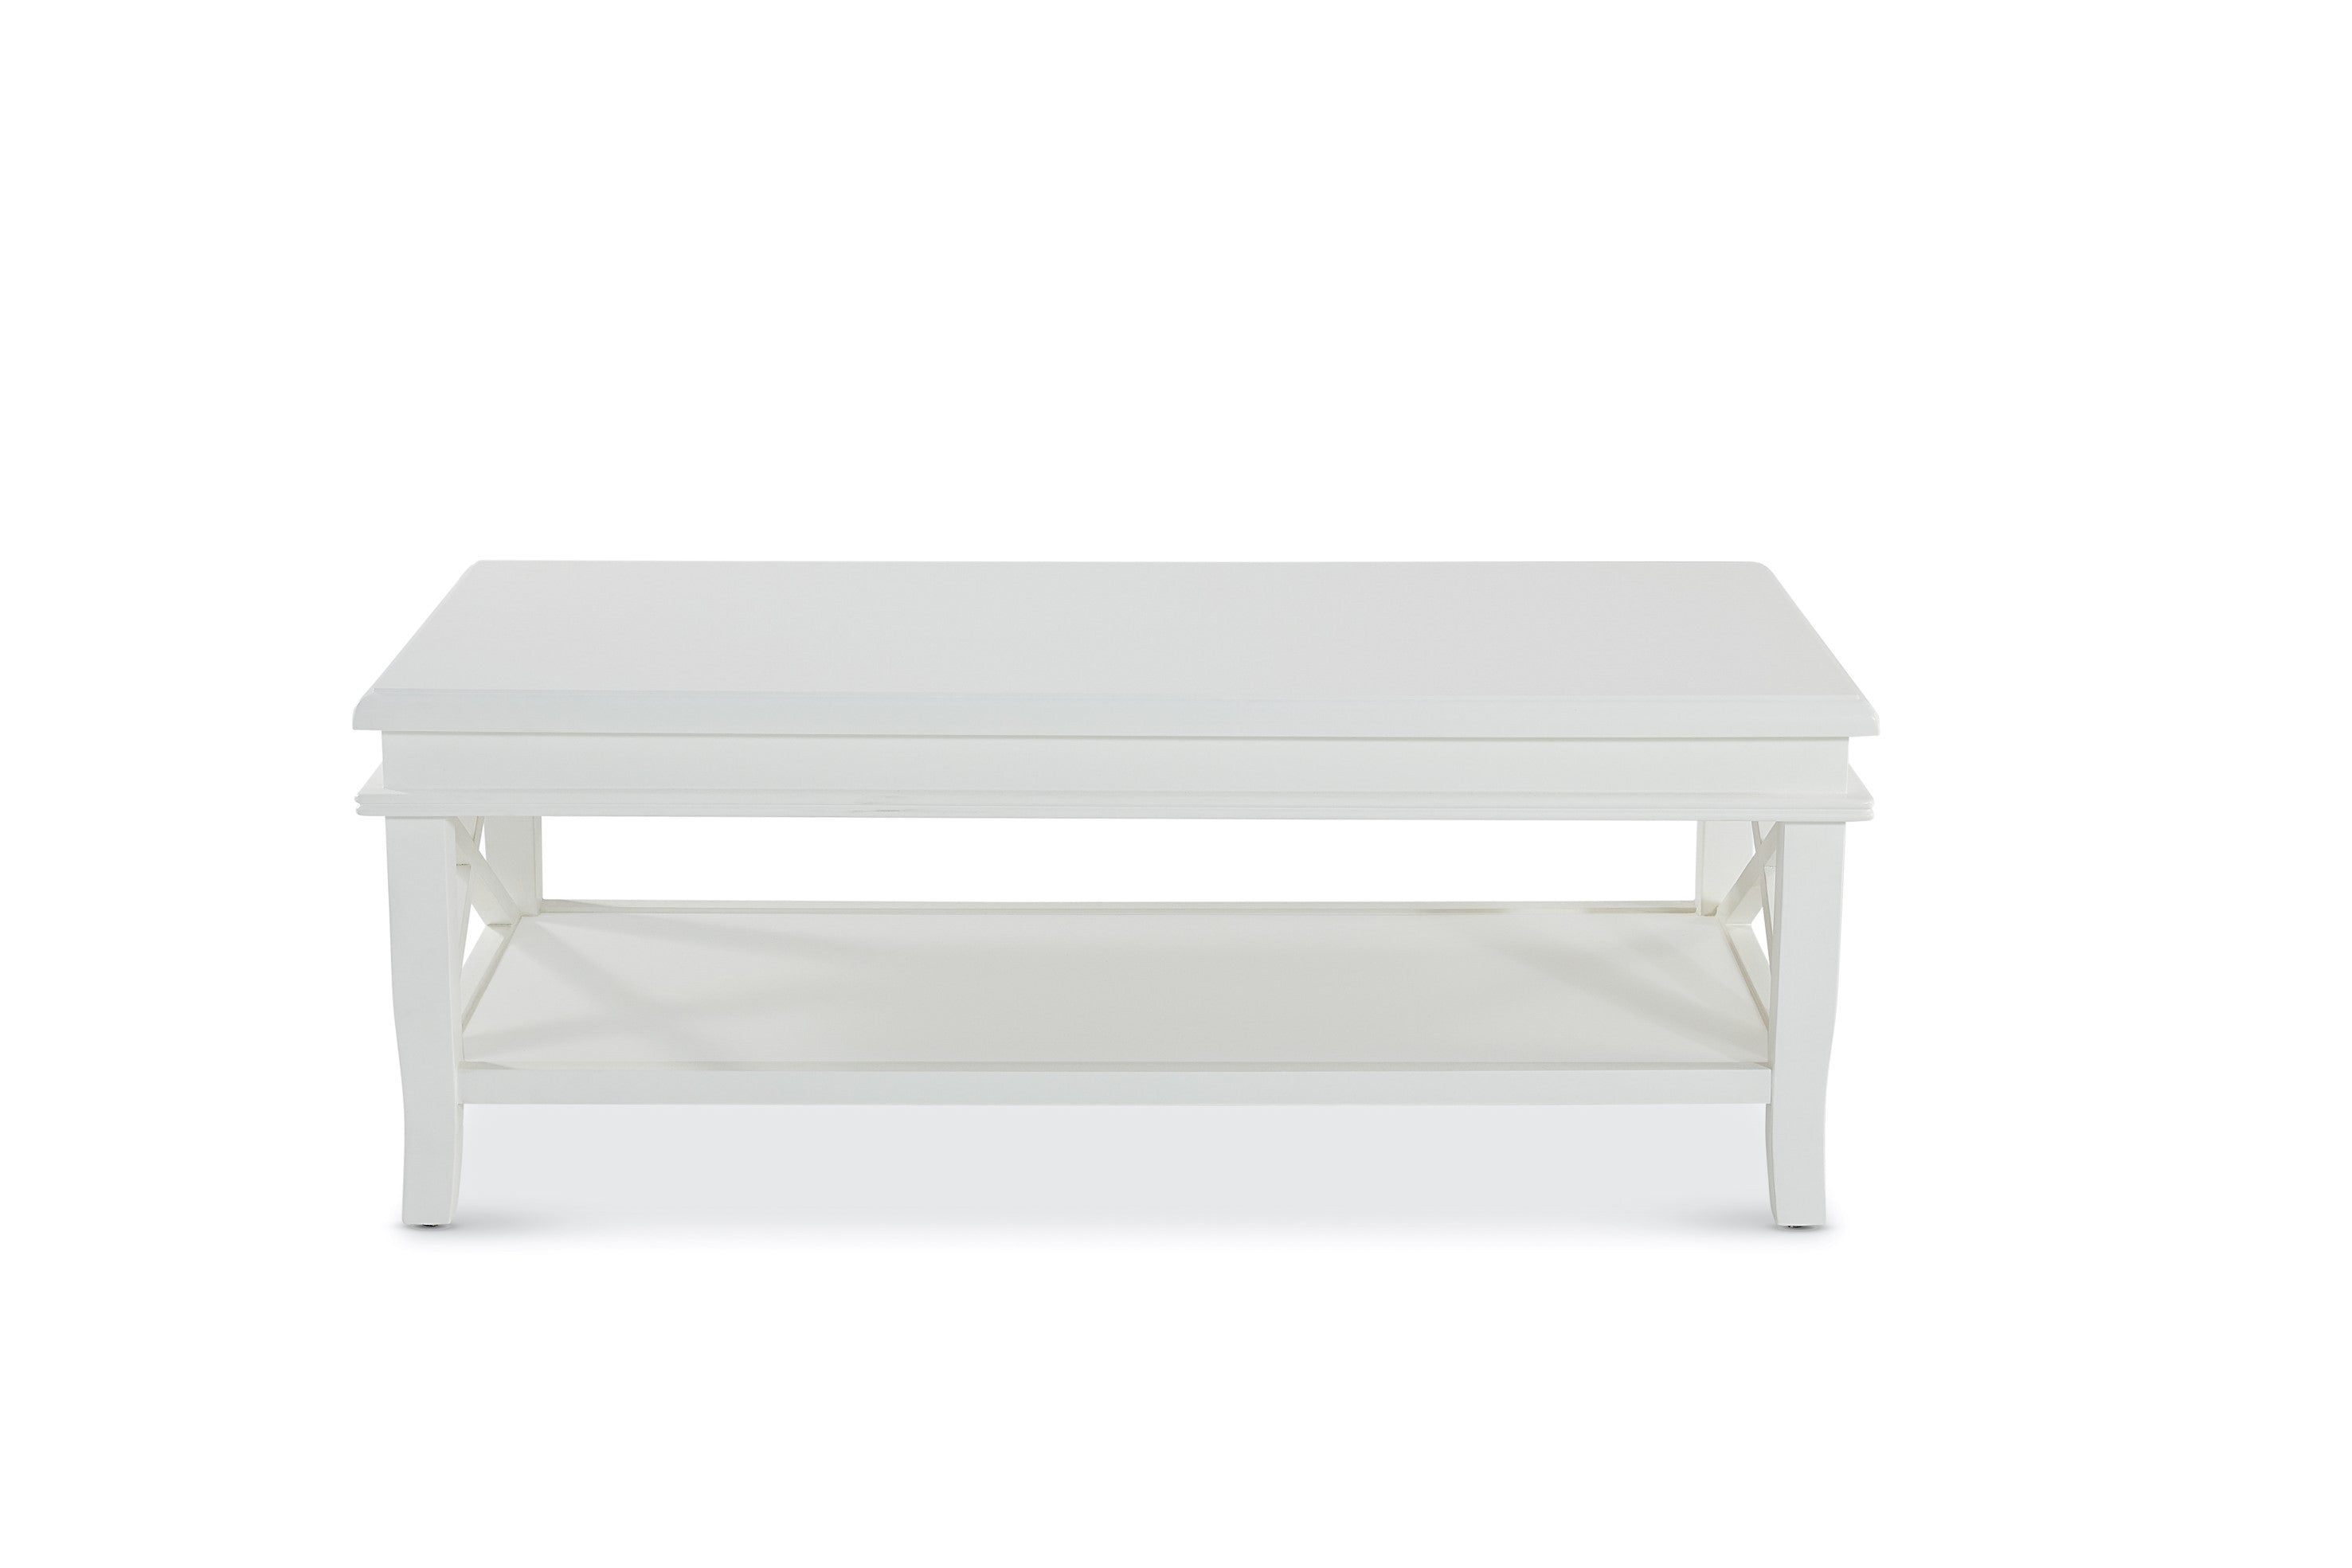 New Hampton Coffee Table Wisteriadesign